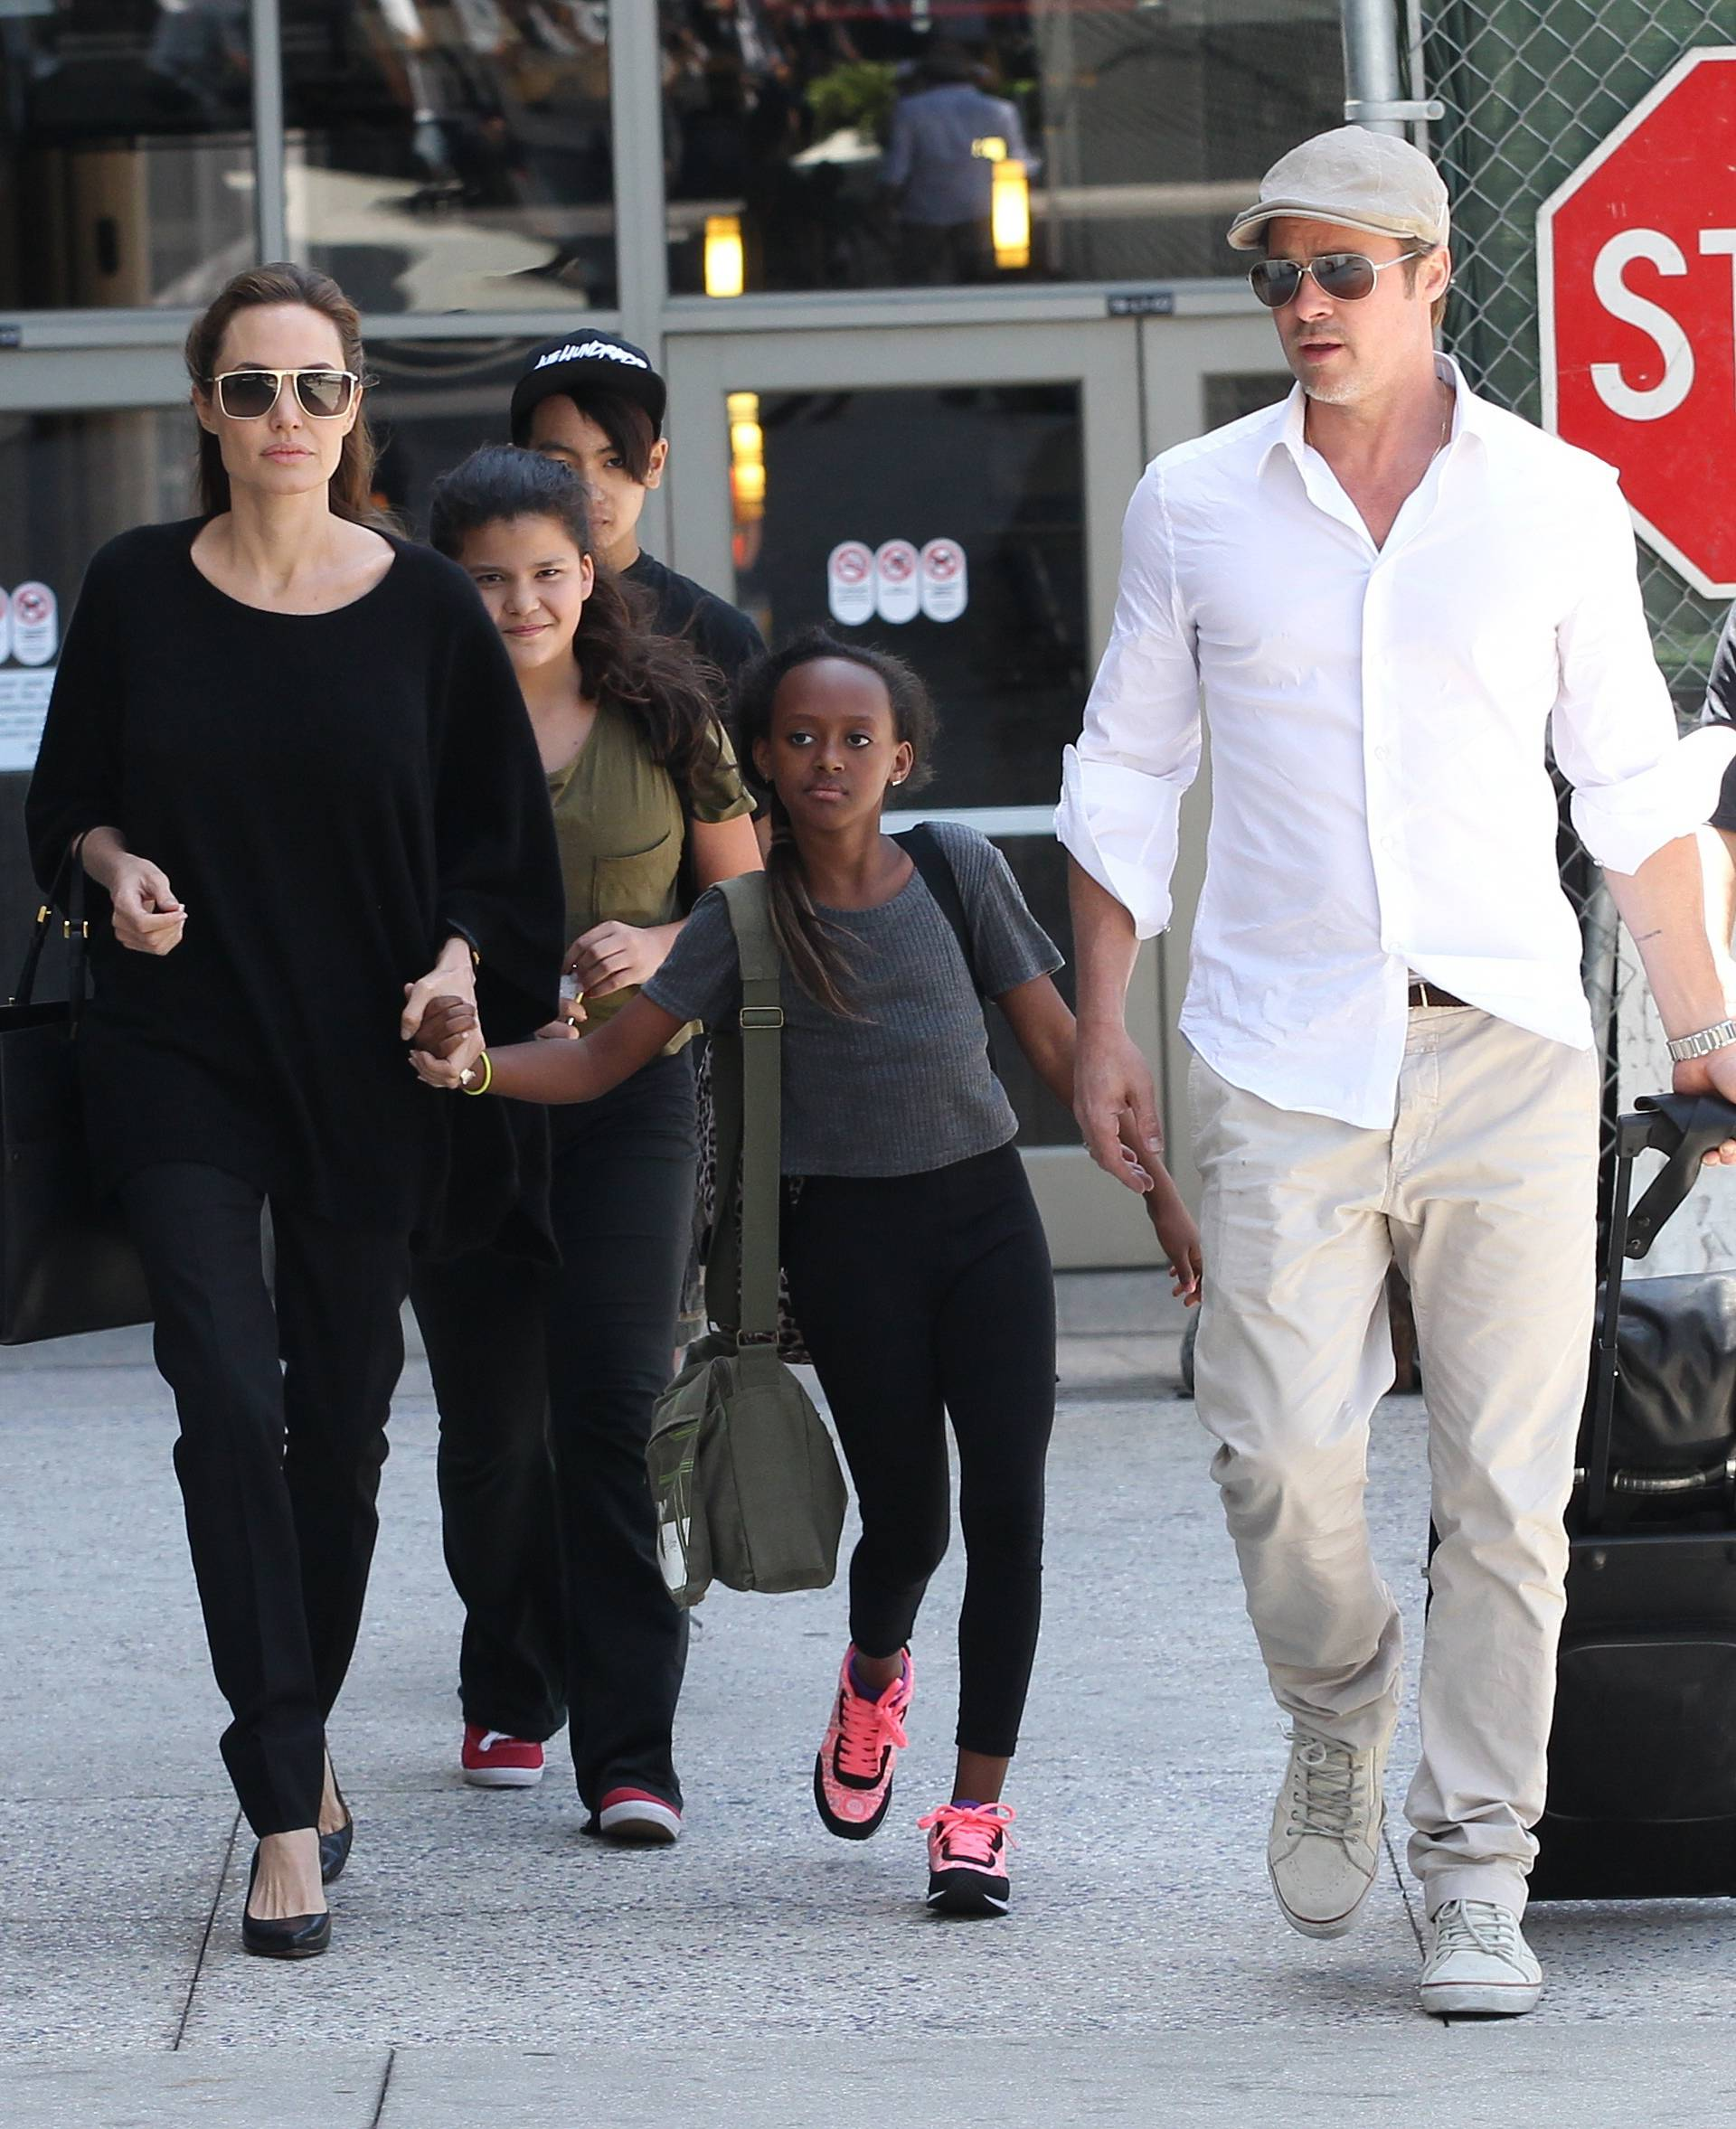 Angelina Jolie, Brad Pitt and Family Sighting - Los Angeles